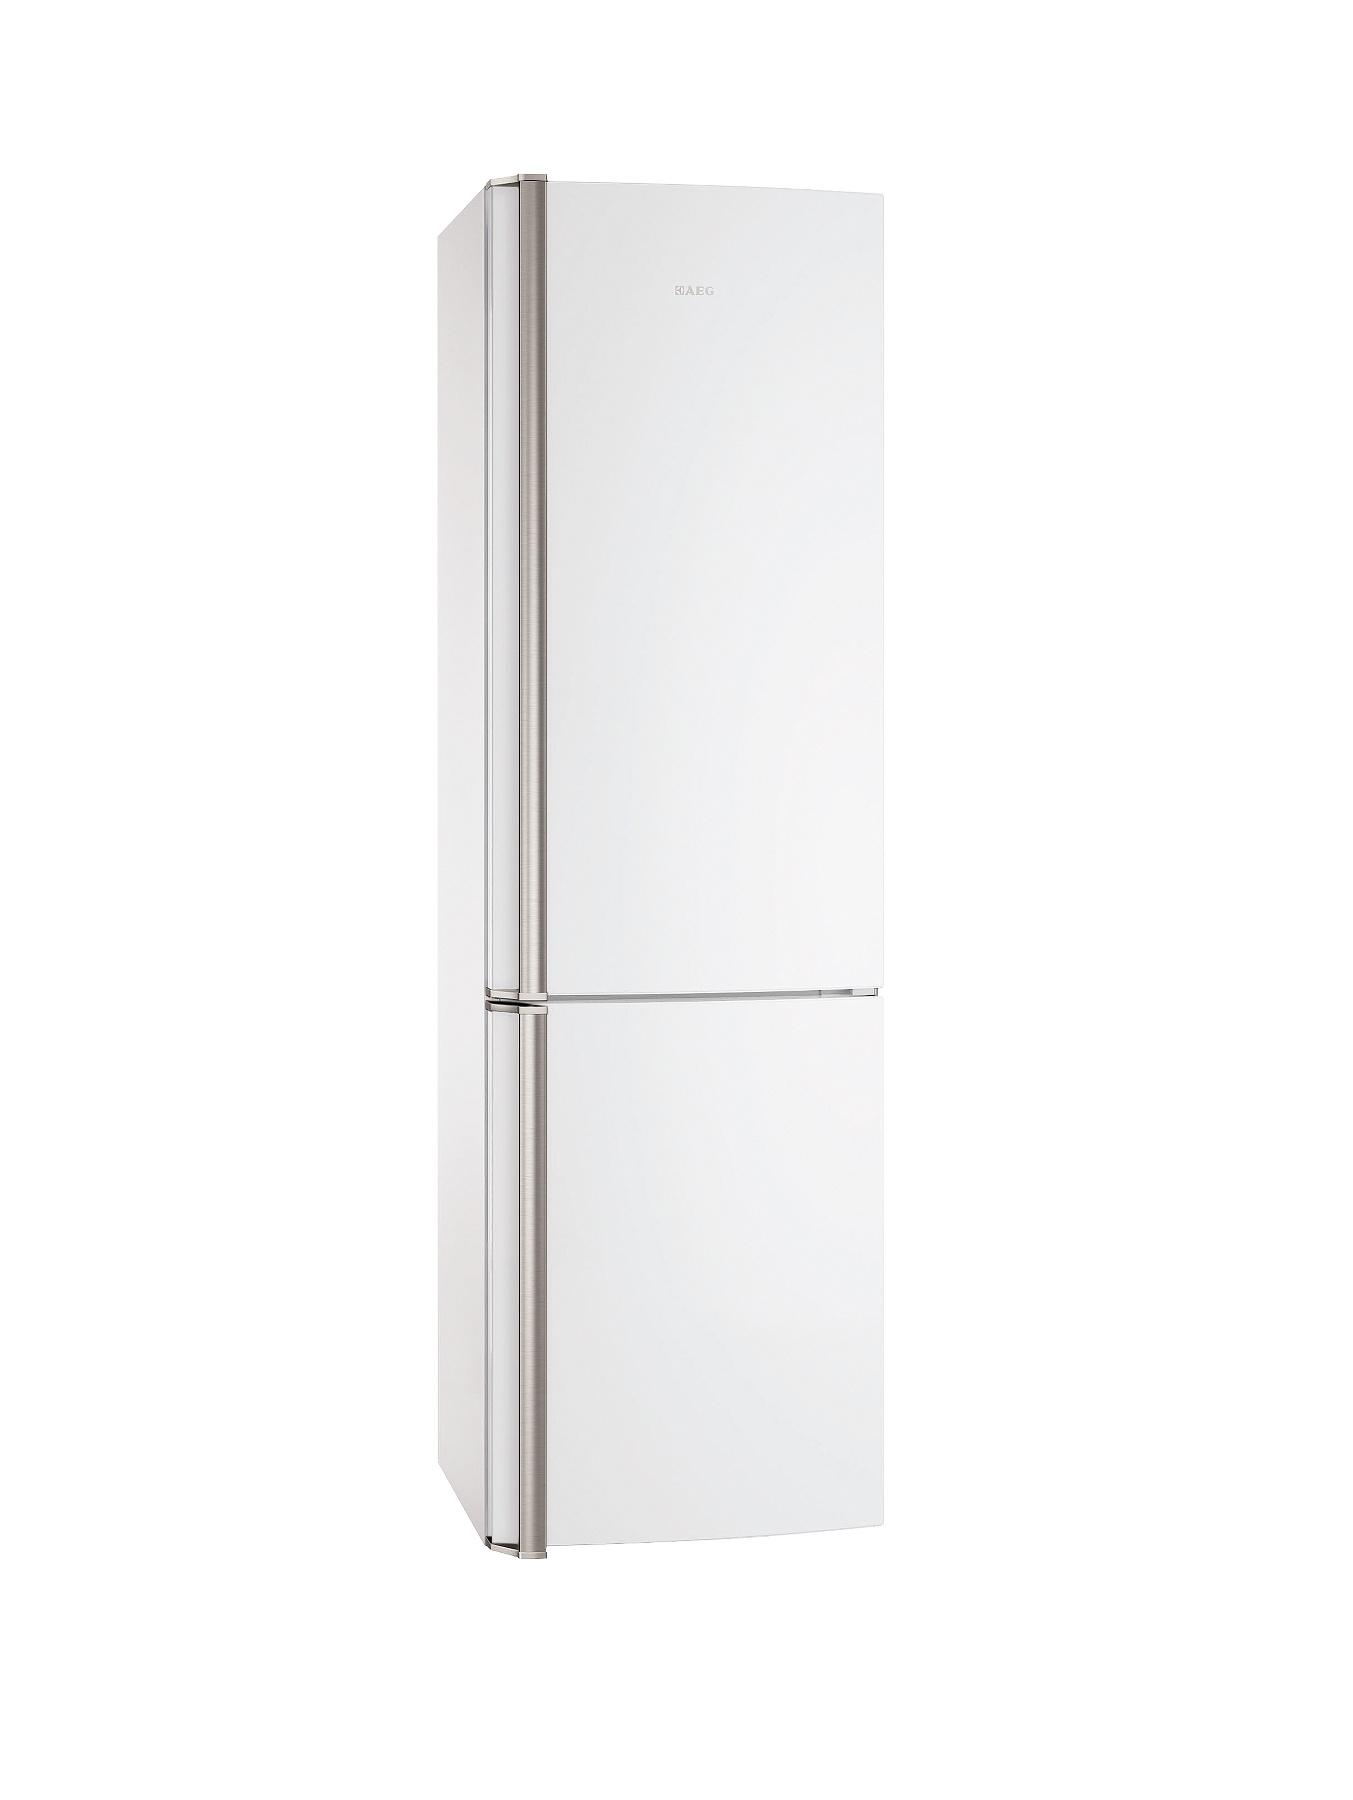 AEG S83820CTW2 Frost Free Fridge Freezer - White